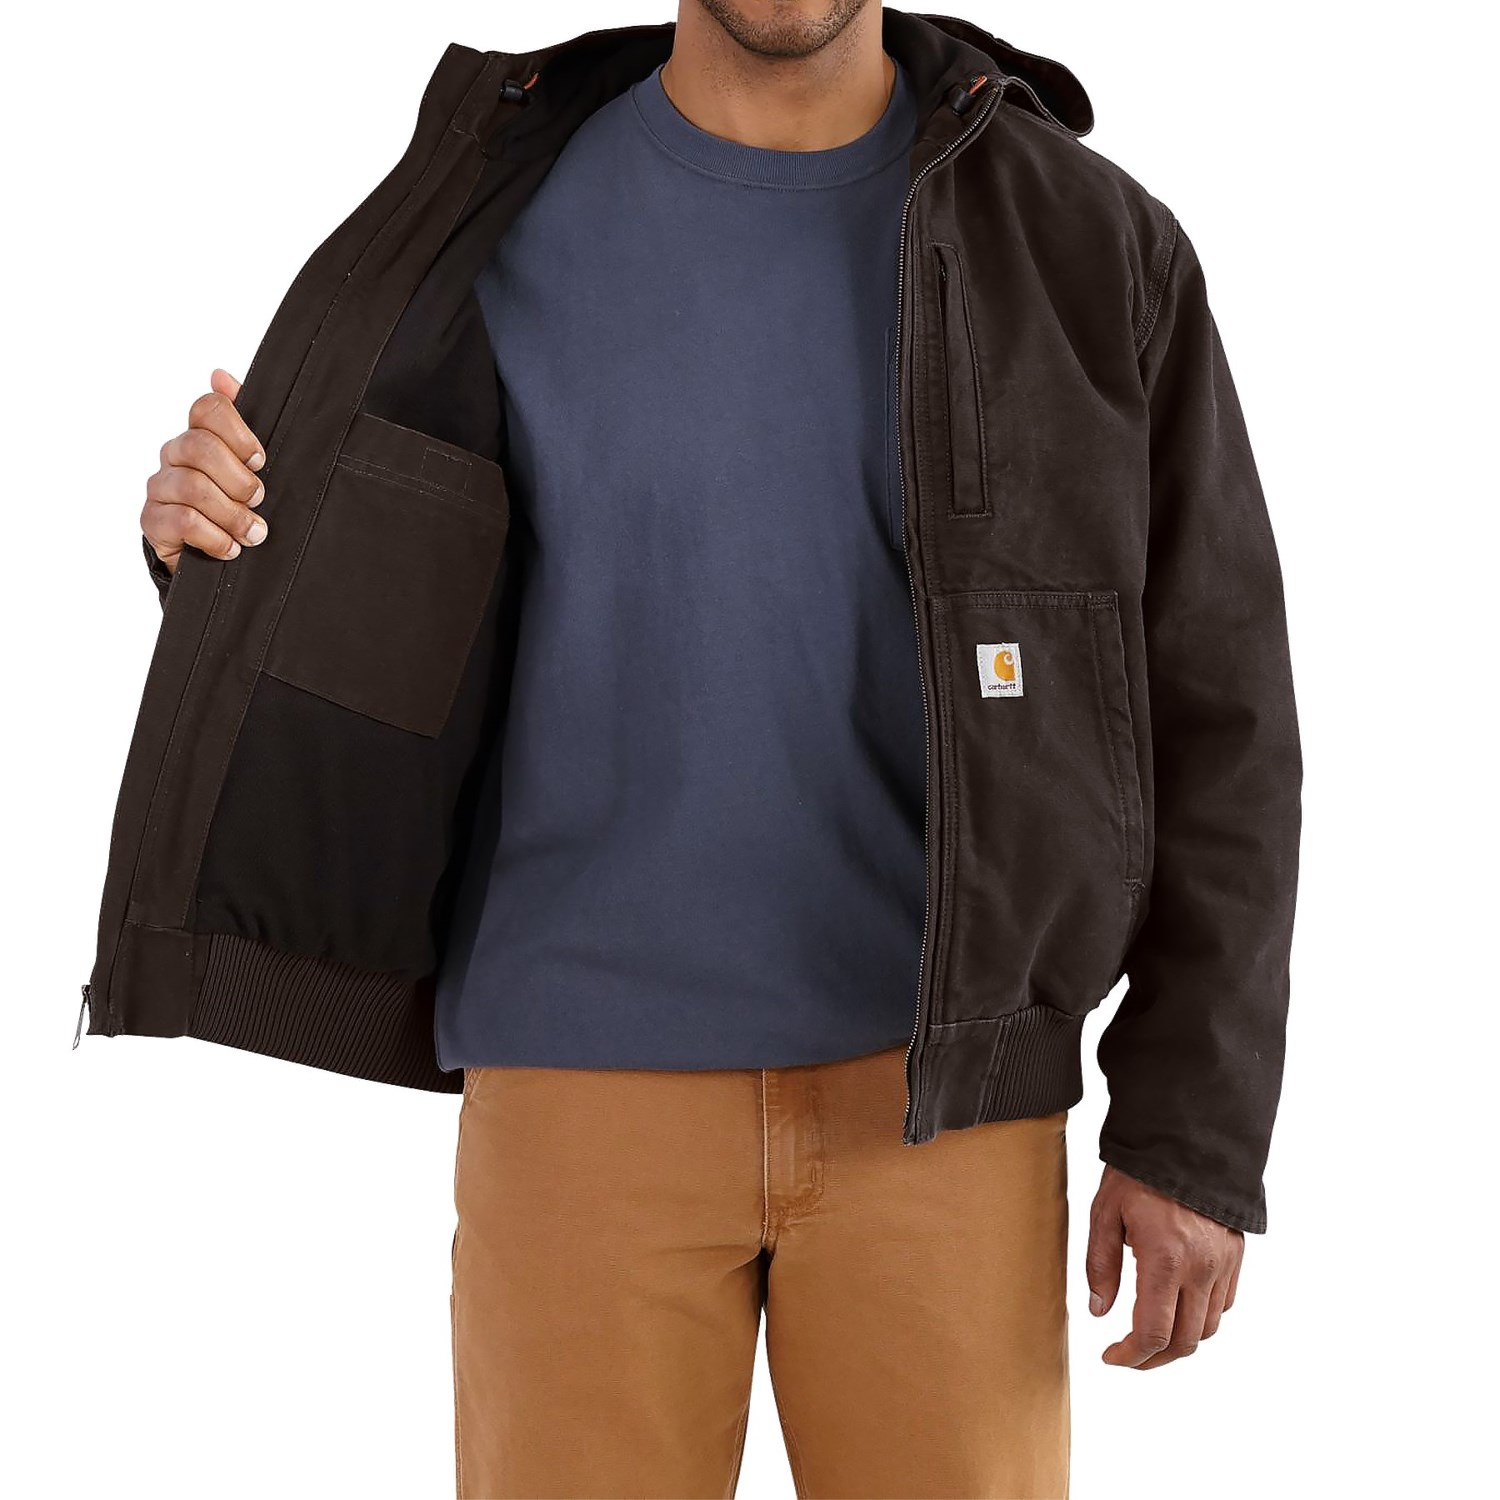 carhartt full swing armstrong active jacket for men #1: carhartt full swing armstrong active jacket factory seconds for men a 149pk 2 1500 1